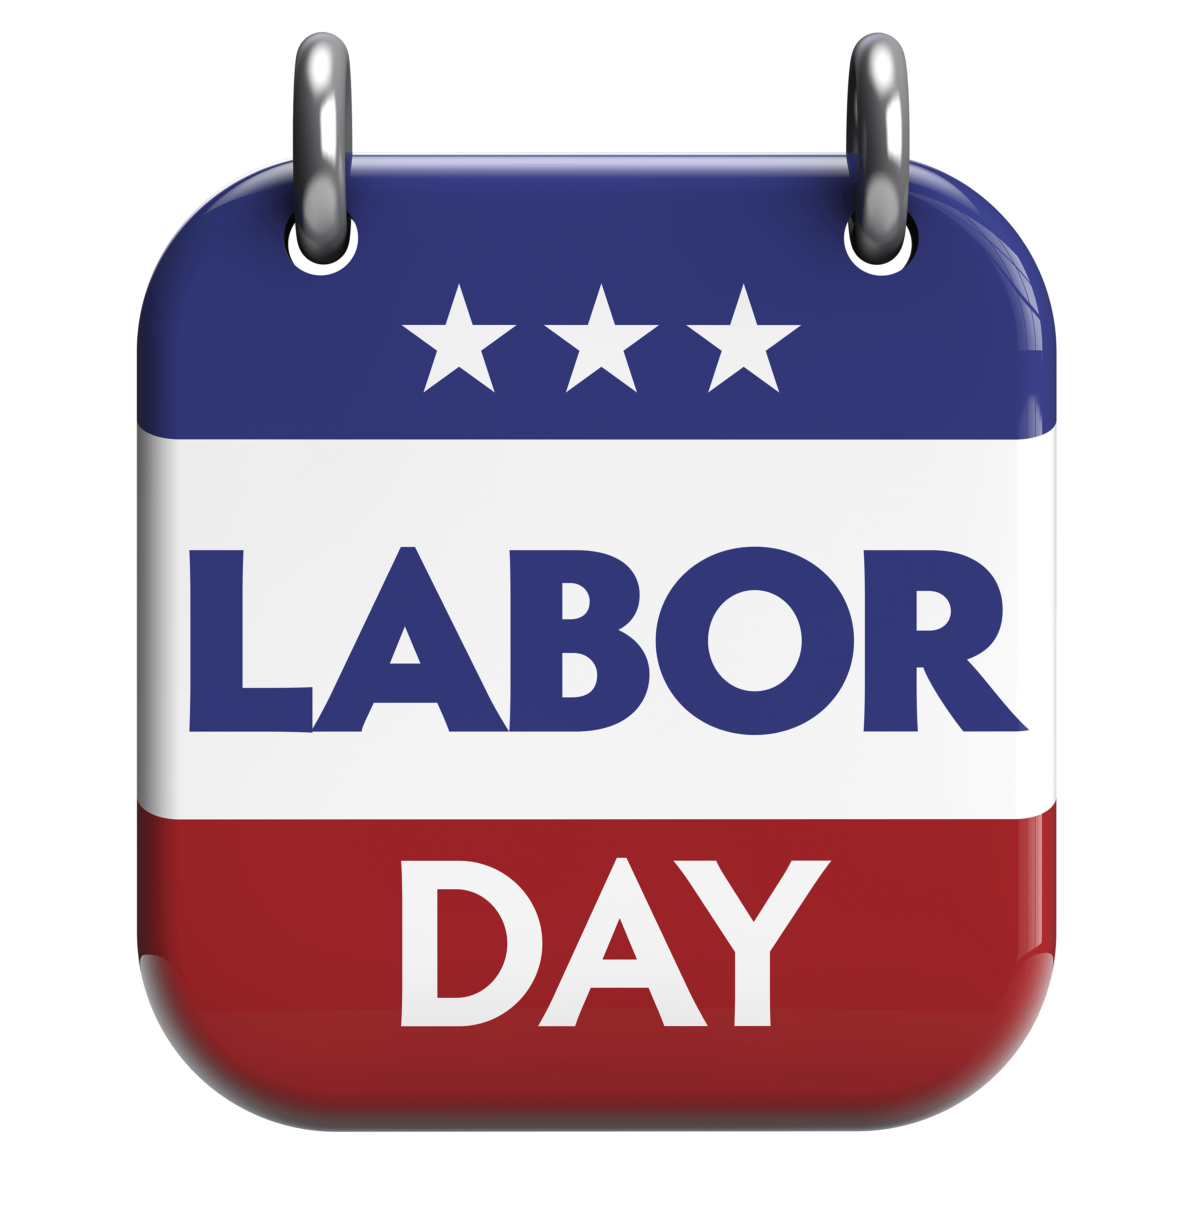 Labor Day Images, Labor Day Wallpapers For Free Download, GLaureL …